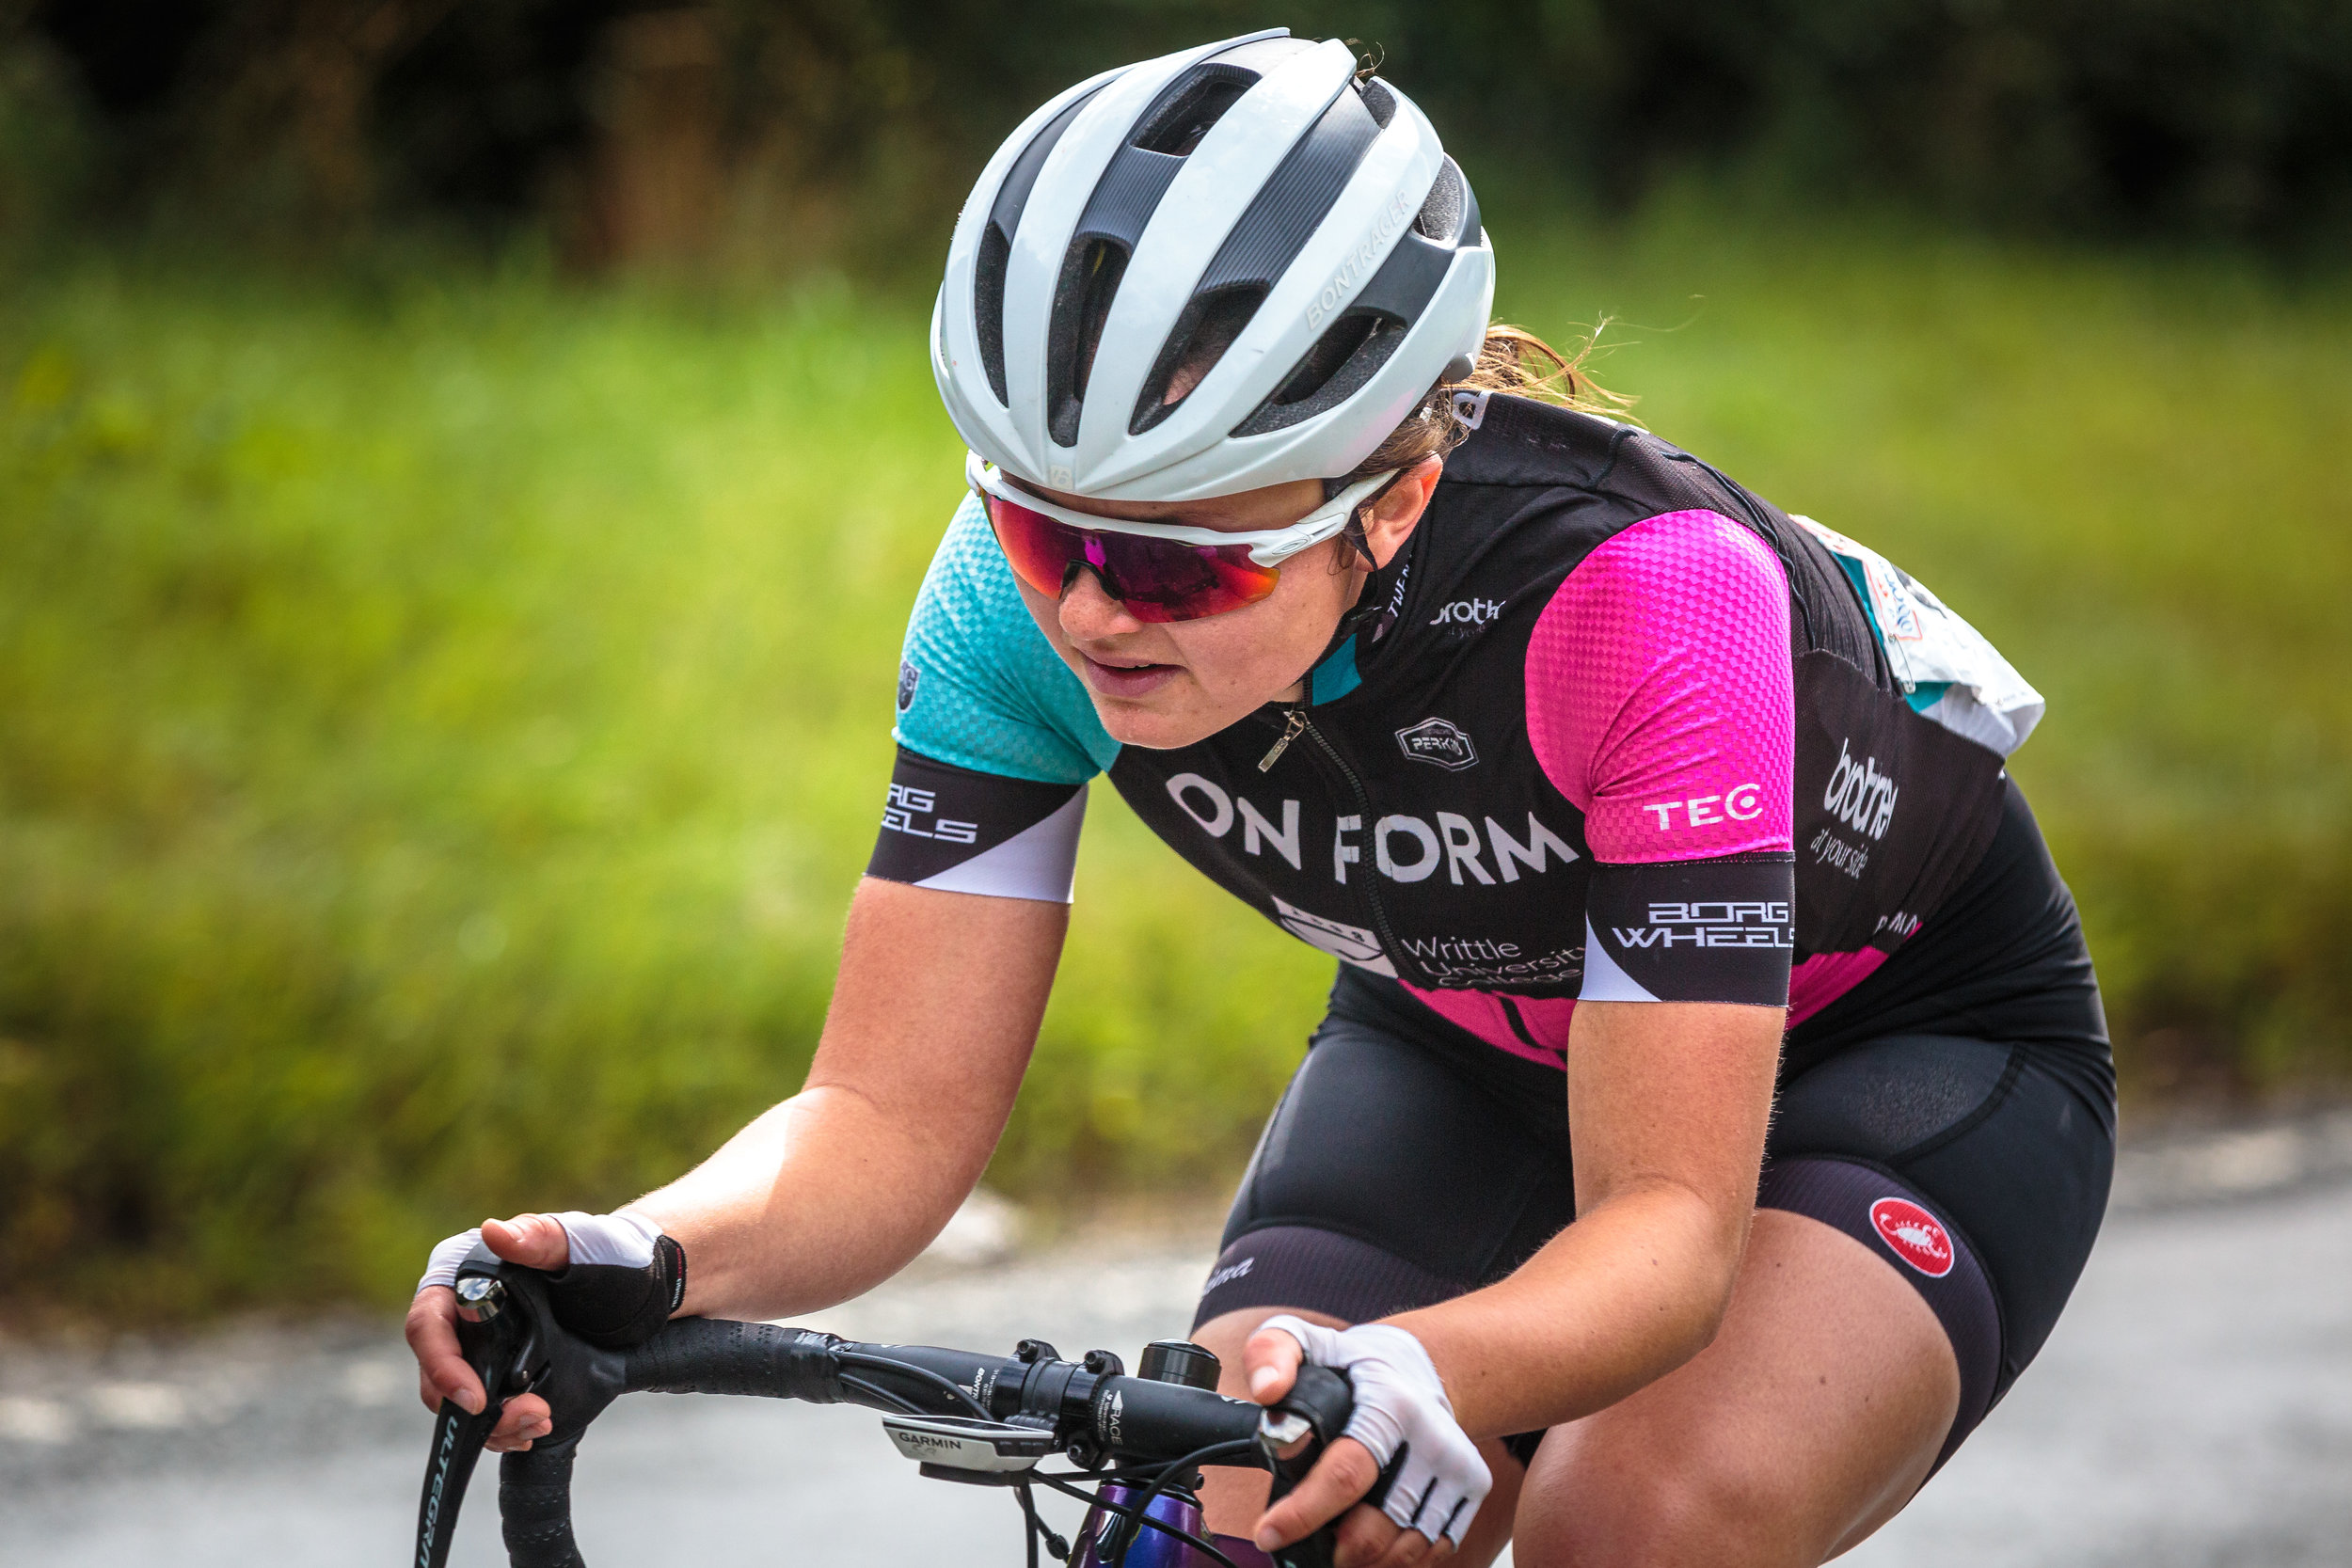 Close up of a female cyclist for team On Form